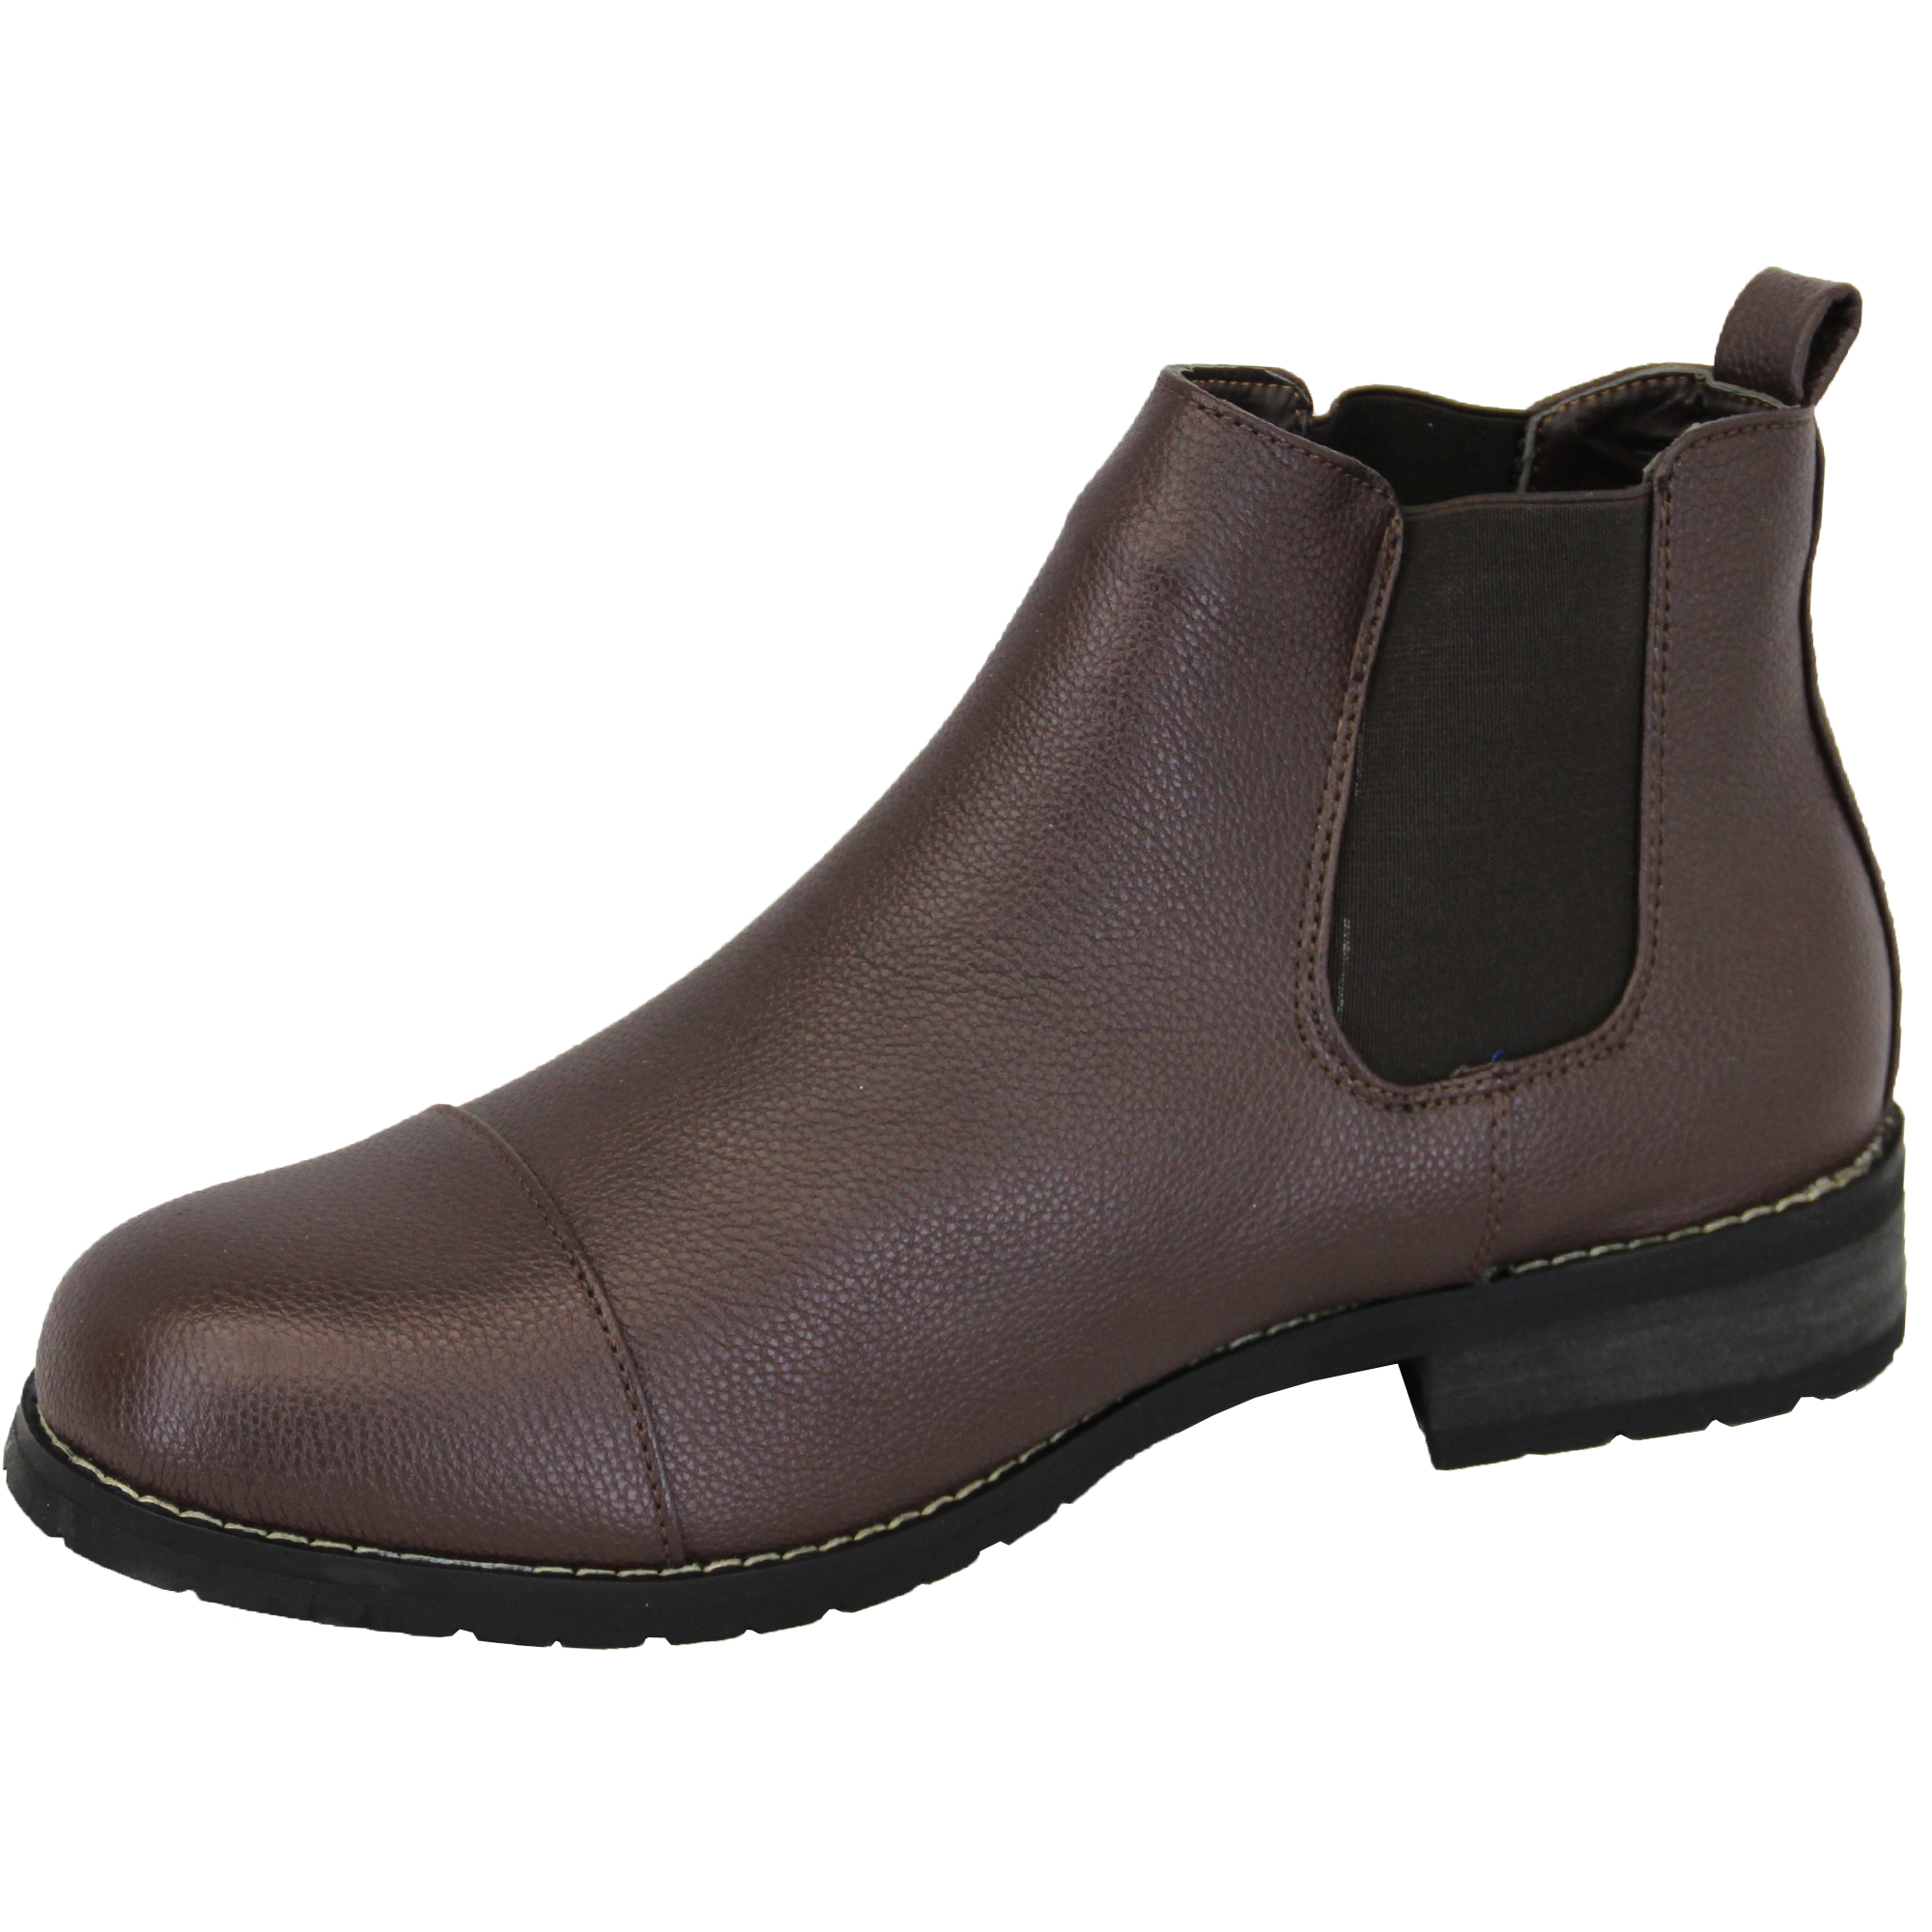 Men's Boots: Stylish Casual & Dress Boots. Belk is your one-stop shop men's boots. Explore the collection and discover men's dress boots, casual boots, leather boots, ankle boots, high top boots and more.